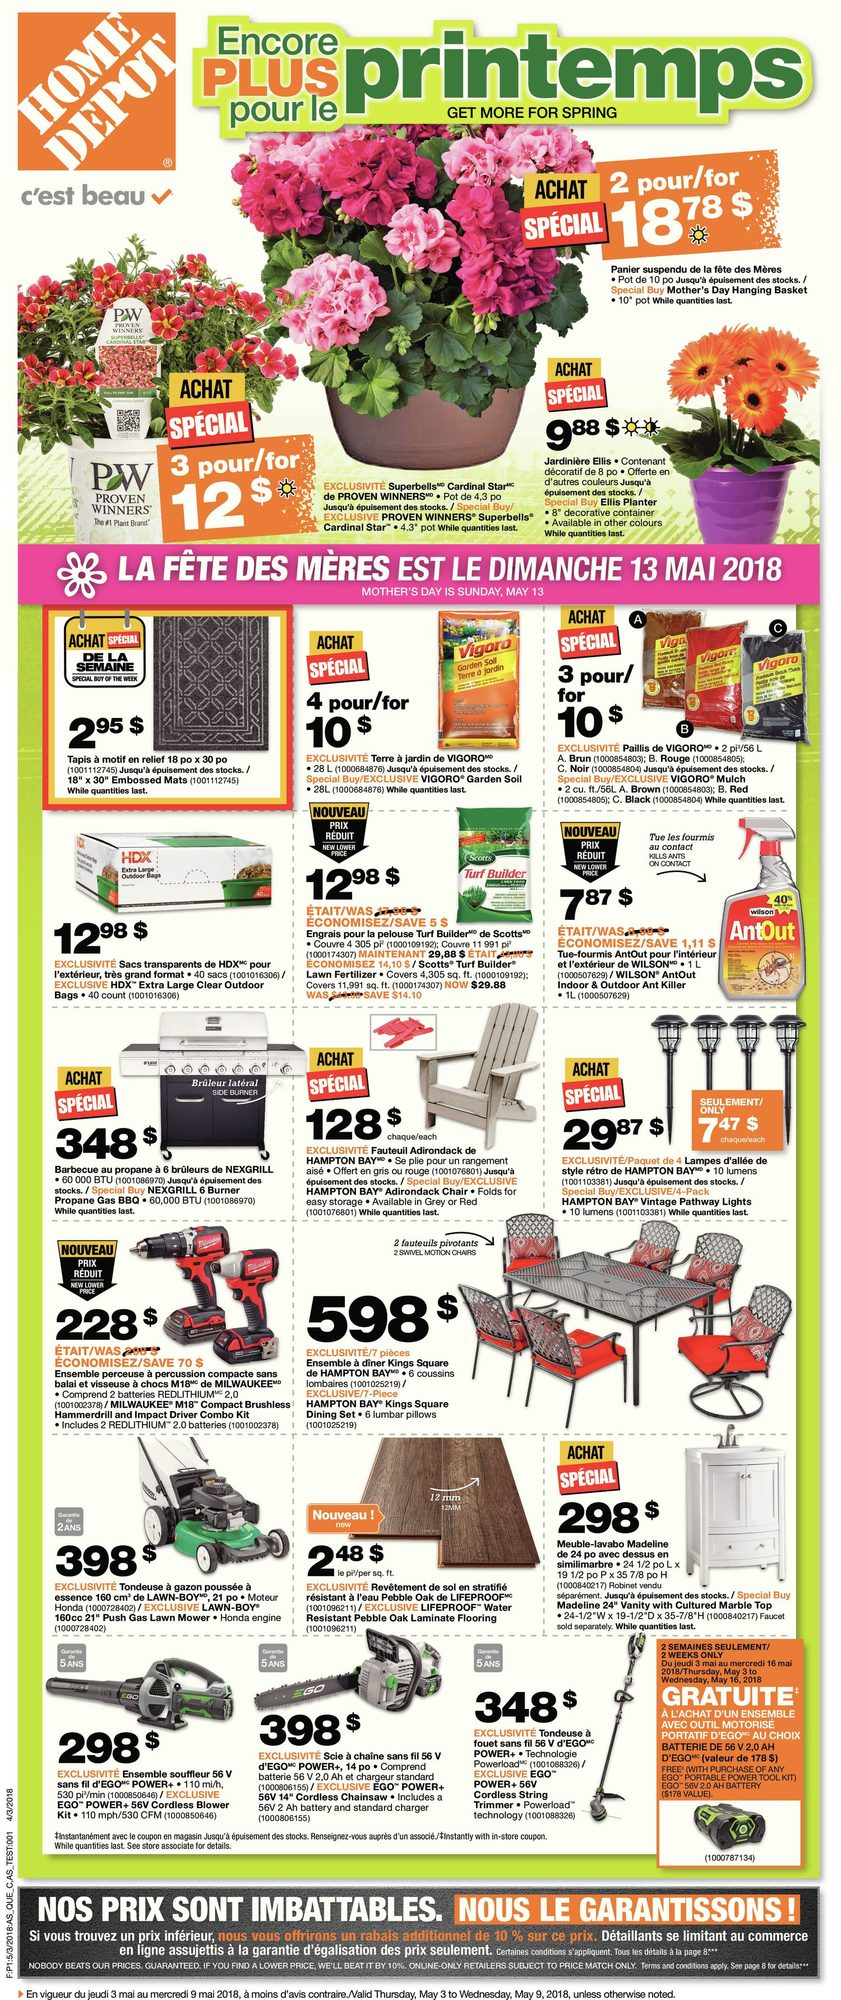 Weekly - Get More For Spring - Home Depot May 3 2018 | YP Shopwise